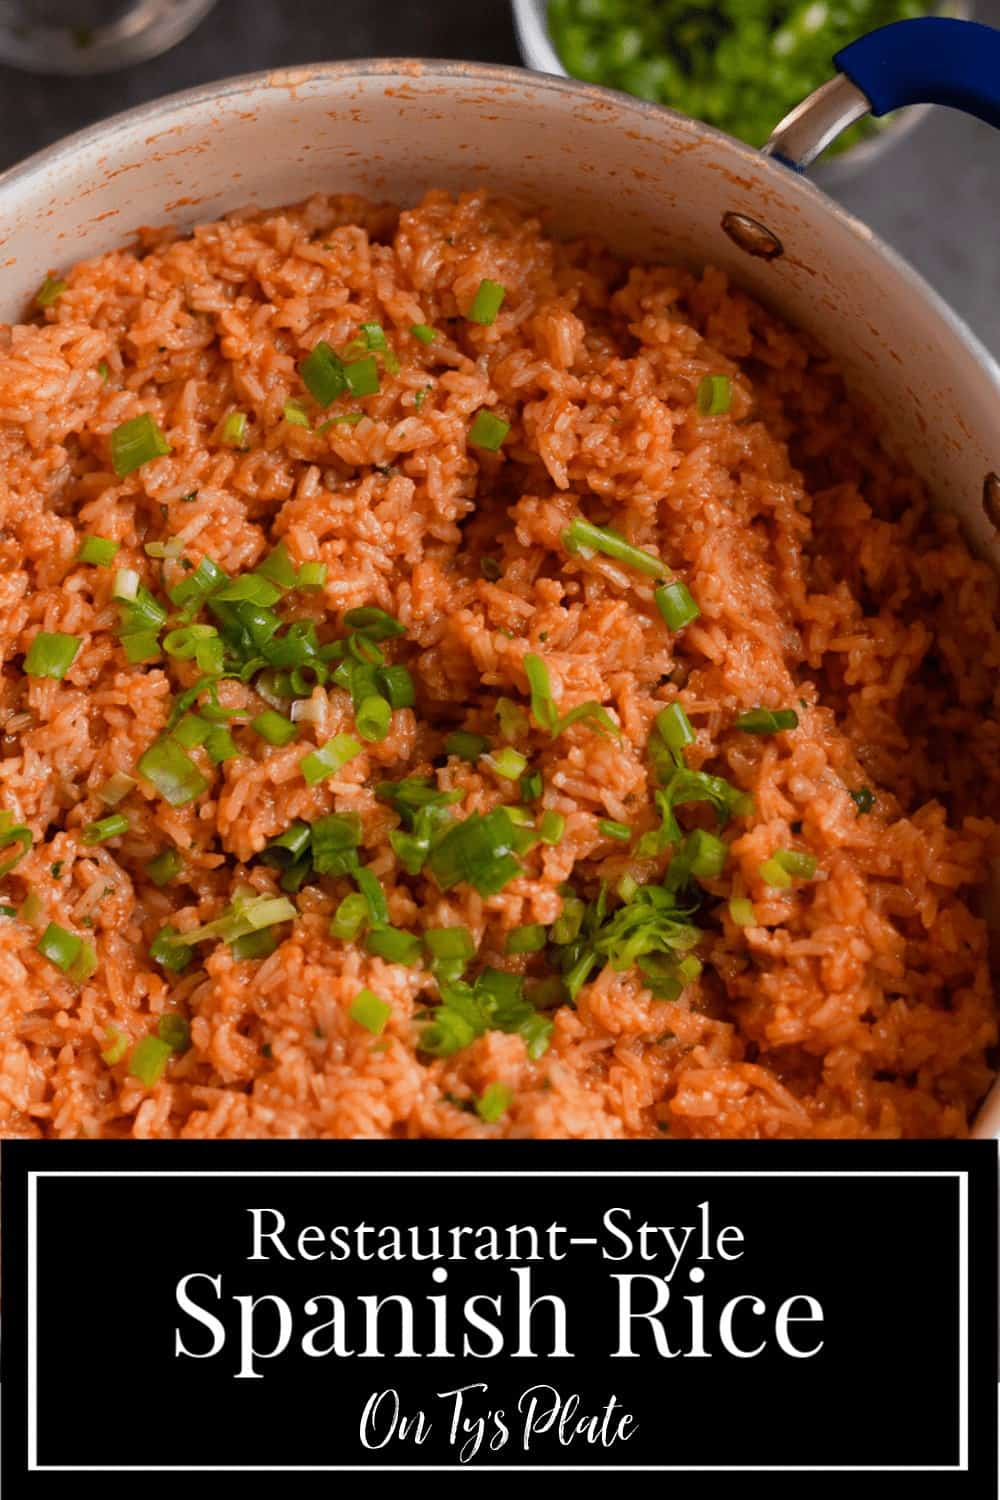 Restaurant-Style Spanish Rice